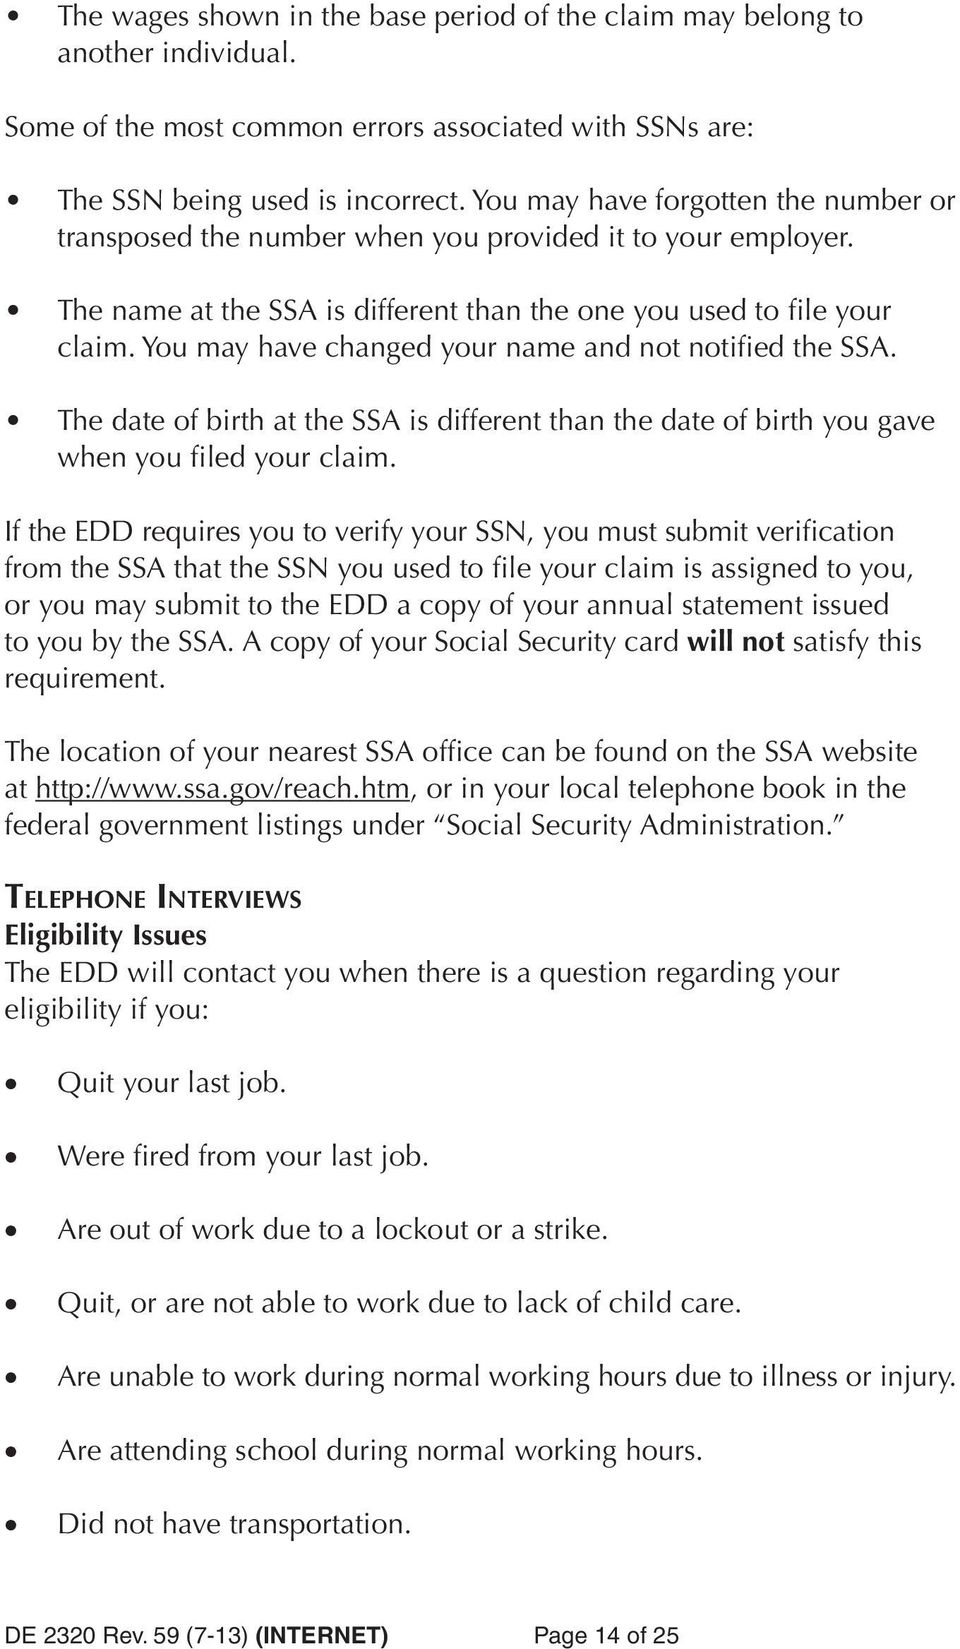 You may have changed your name and not notified the SSA. The date of birth at the SSA is different than the date of birth you gave when you filed your claim.